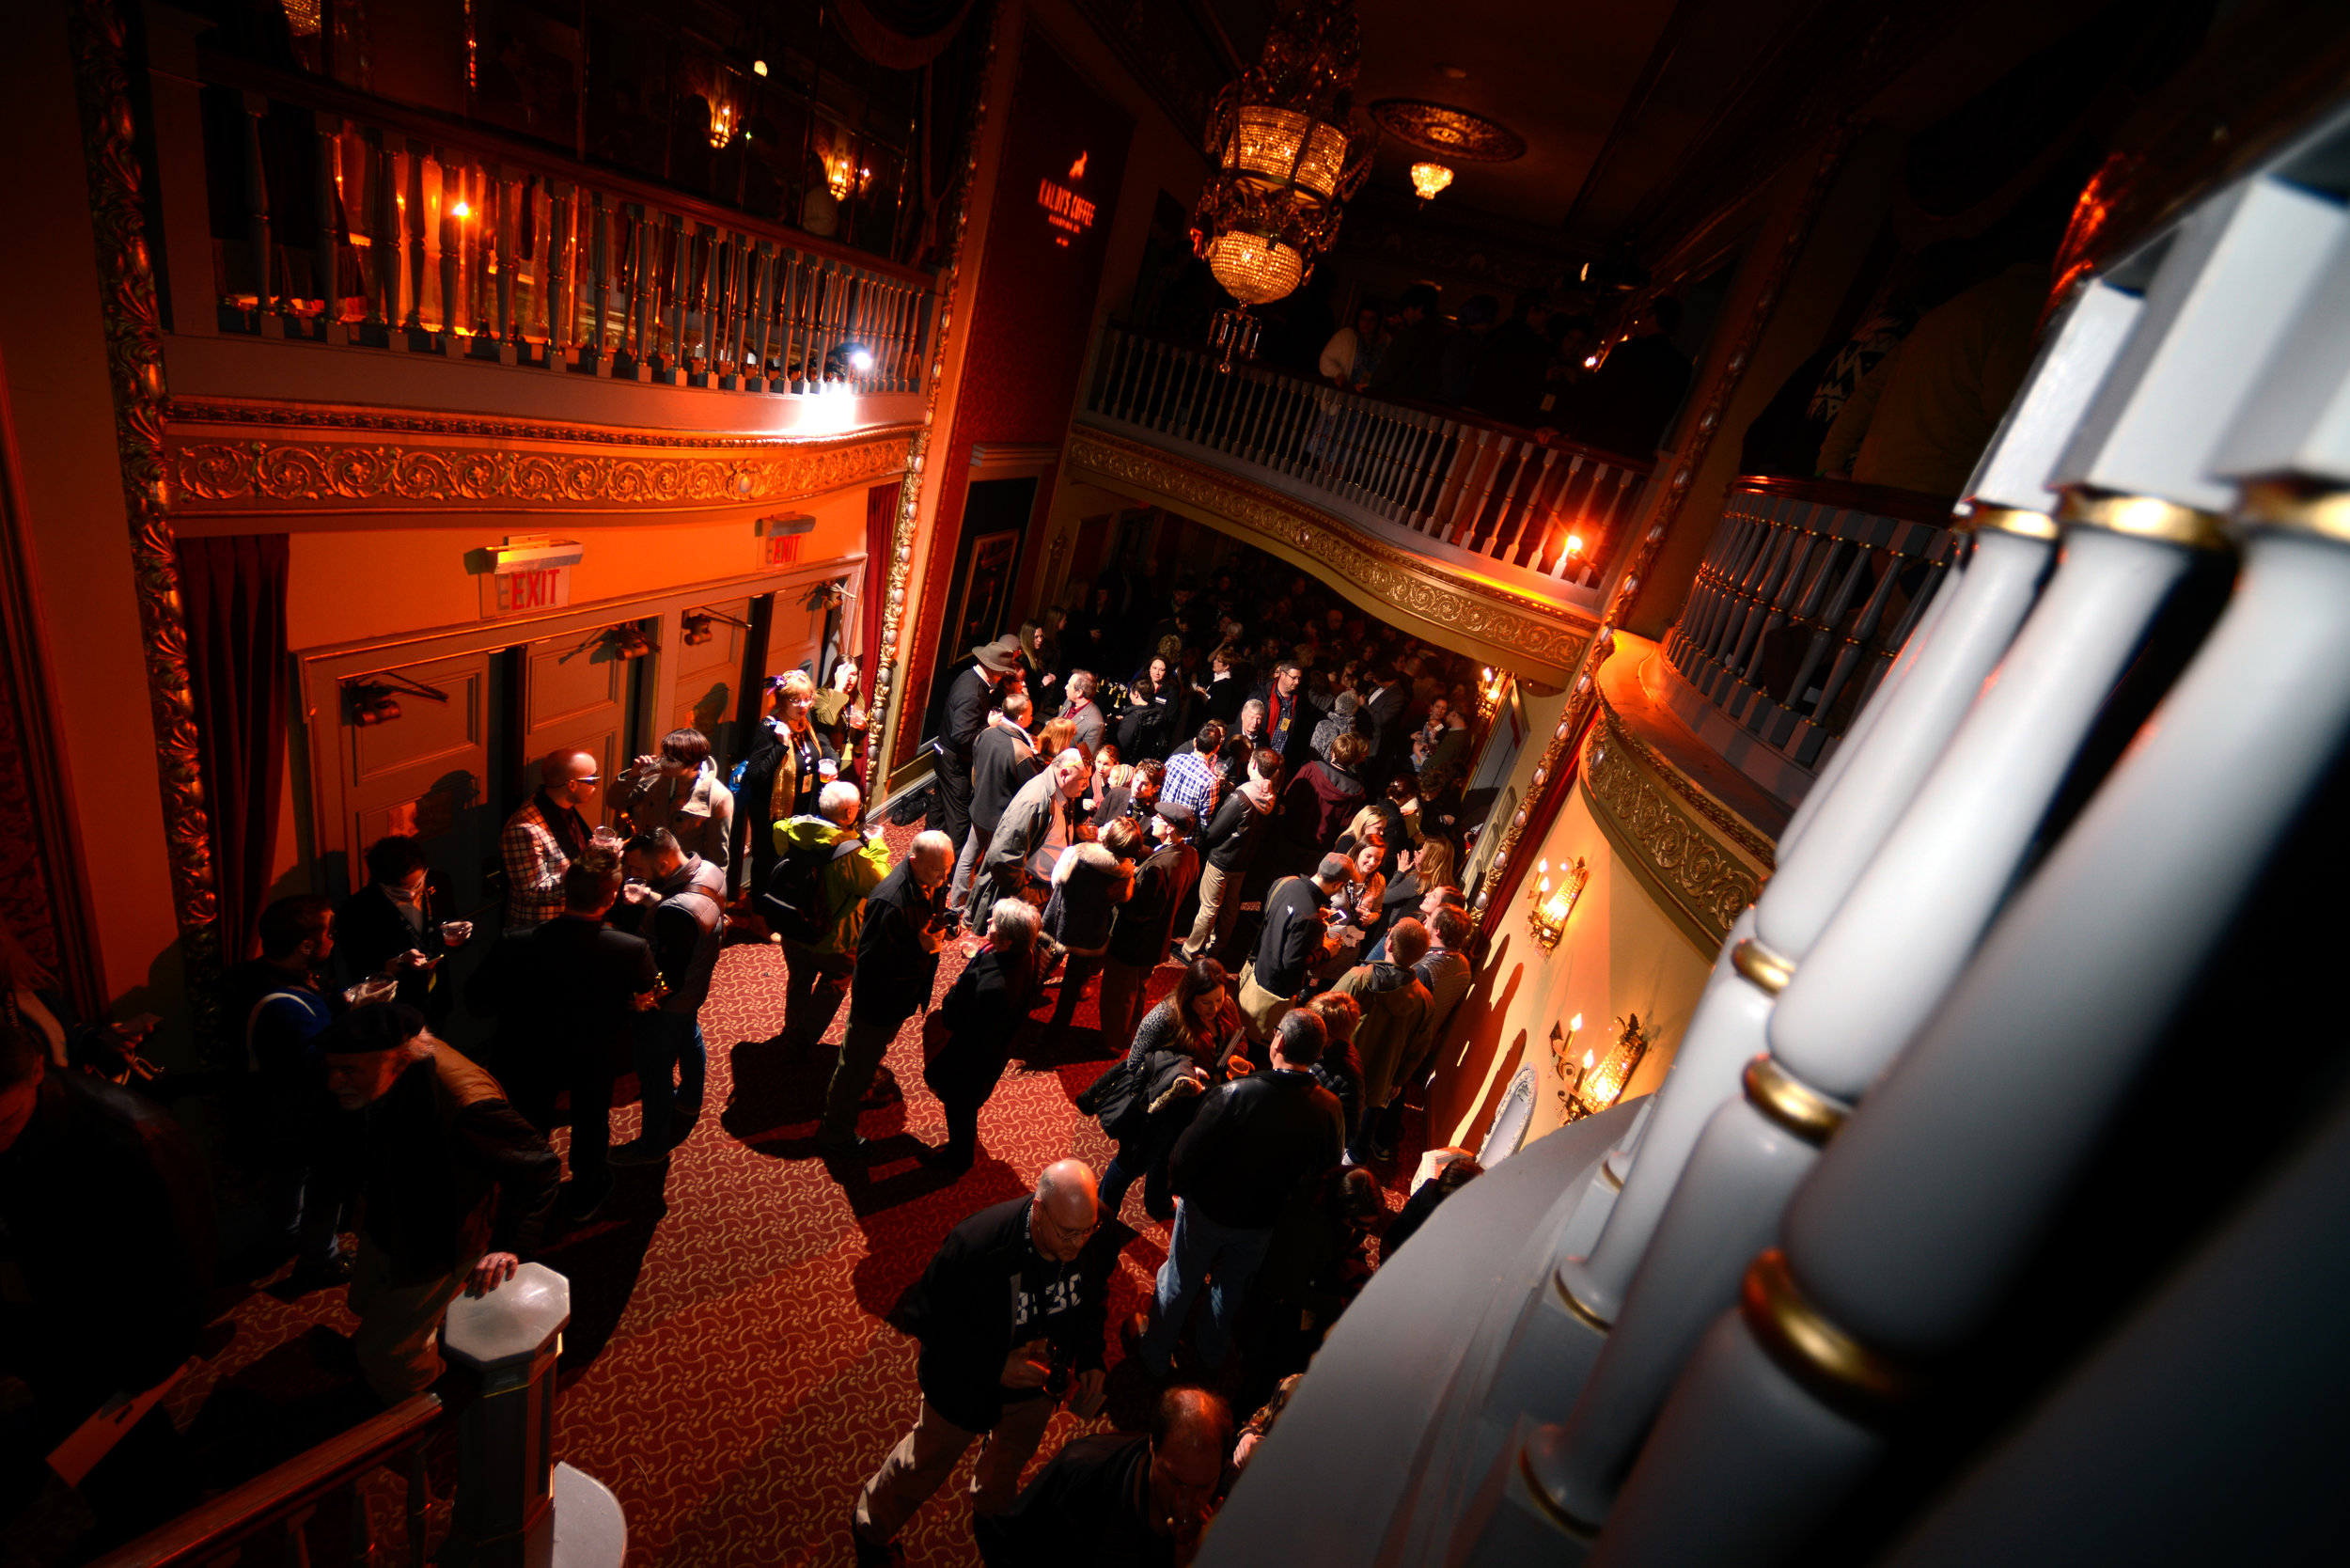 Crowds mingle during the True/False Jubilee masquerade at the Missouri Theatre on Thursday, March 3, 2016, in Columbia, MO. The idea for the festival began in 2003, and attendance exceeded 49,500 that year.